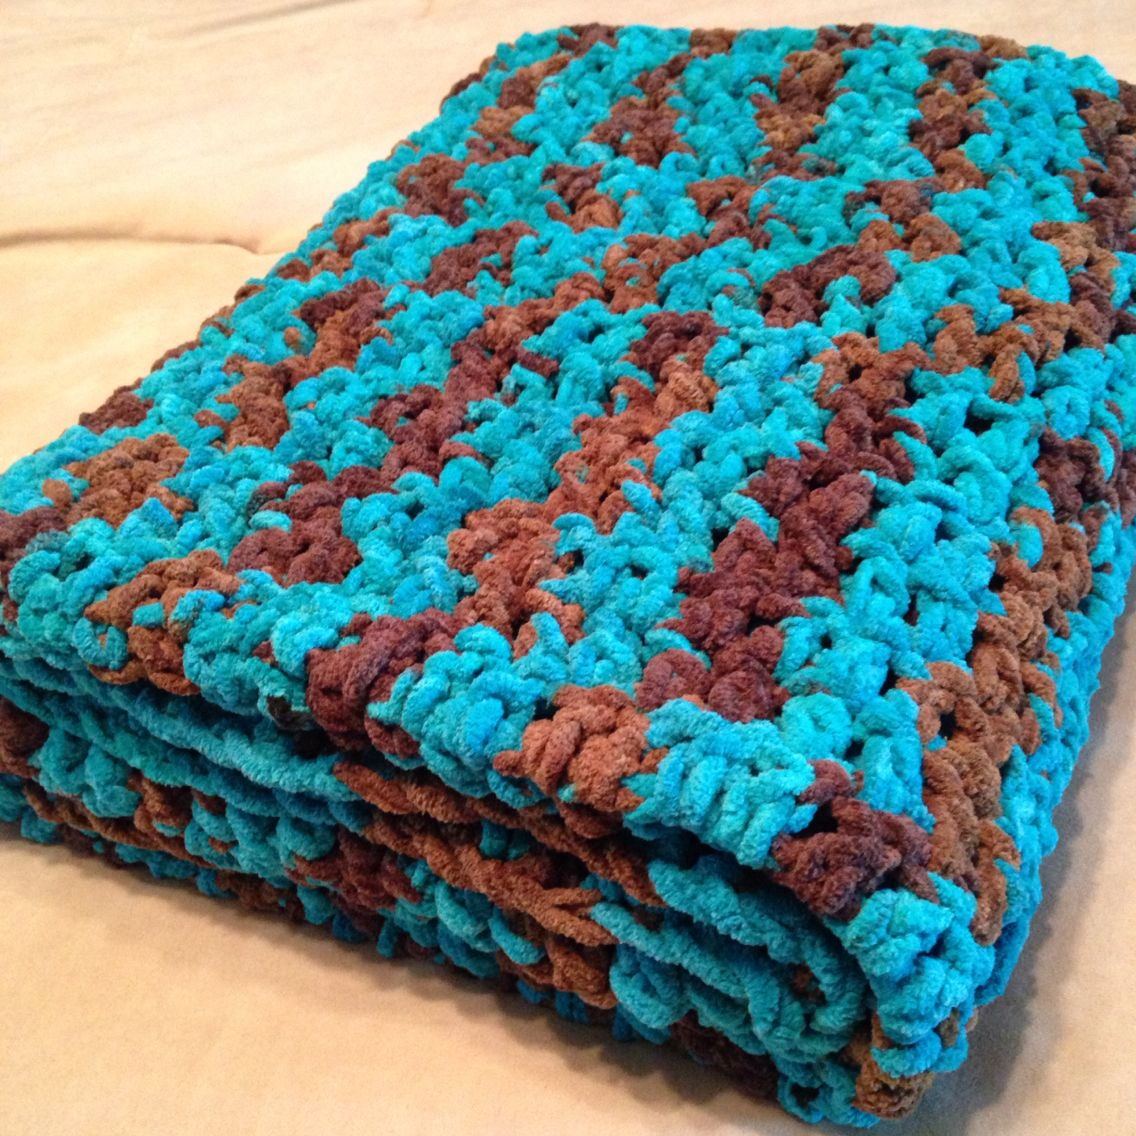 Easy Crochet Lapghan 3 Skeins Bernat Blanket Yarn